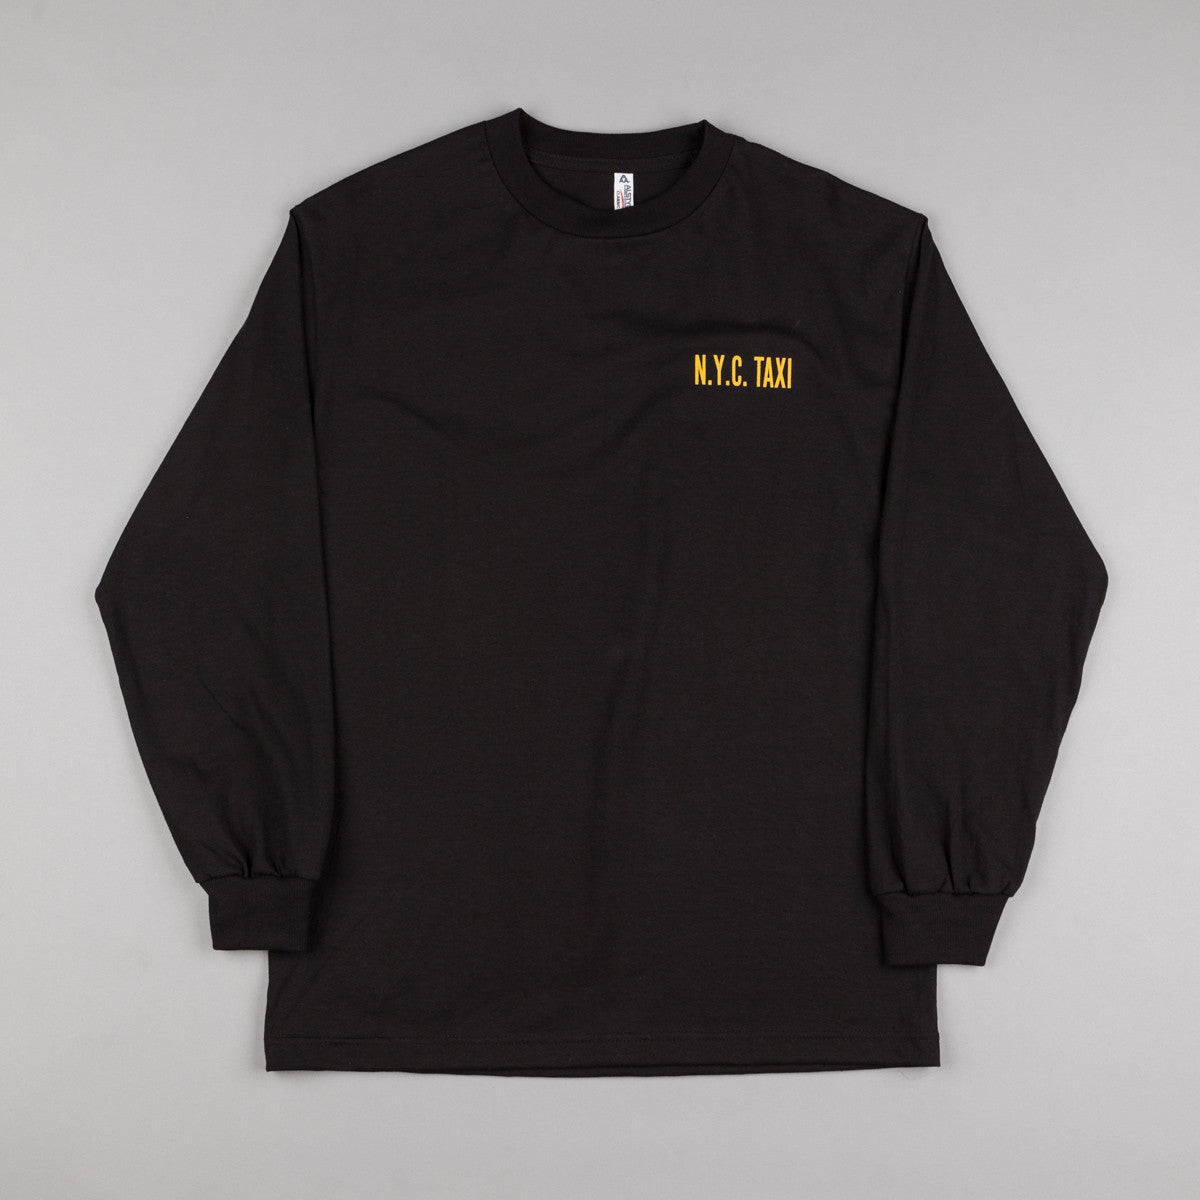 Lurk NYC Taxi Long Sleeve T-Shirt